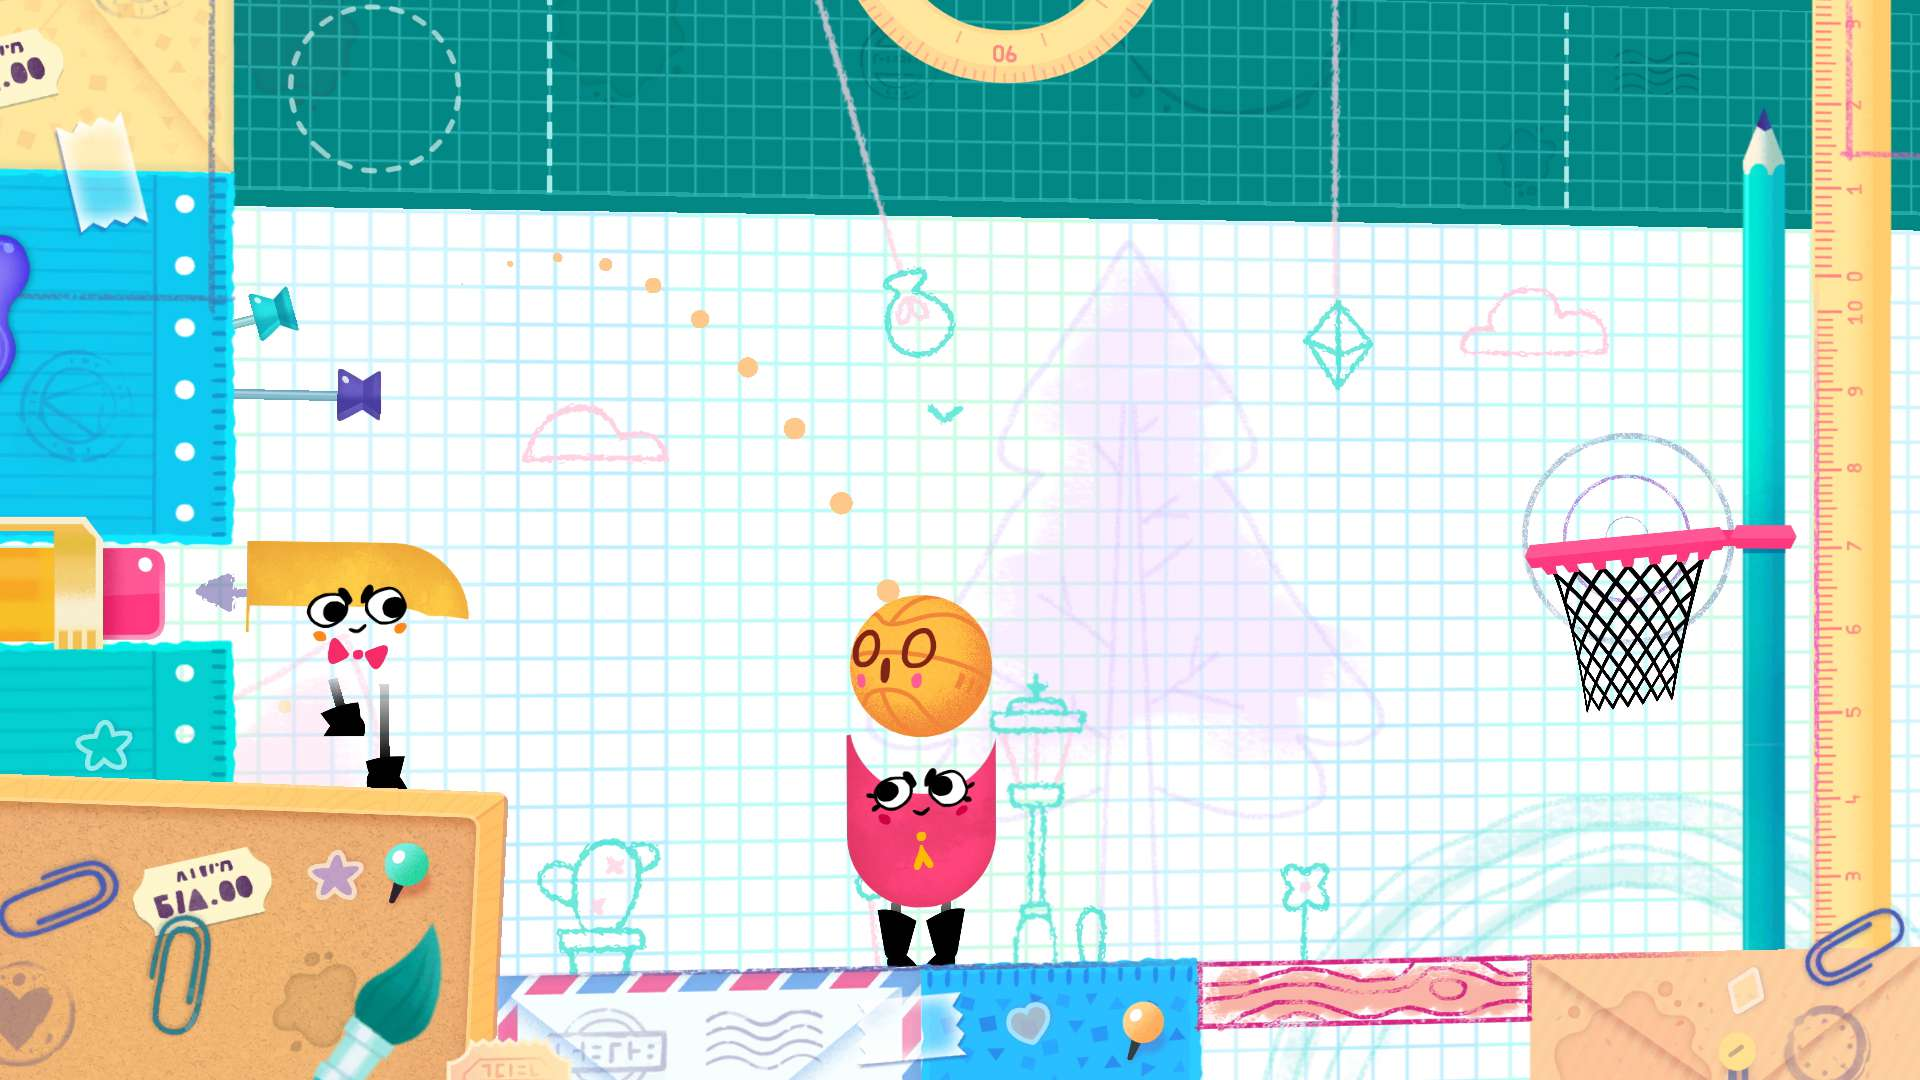 Snipperclips: Cut it out, together! #9